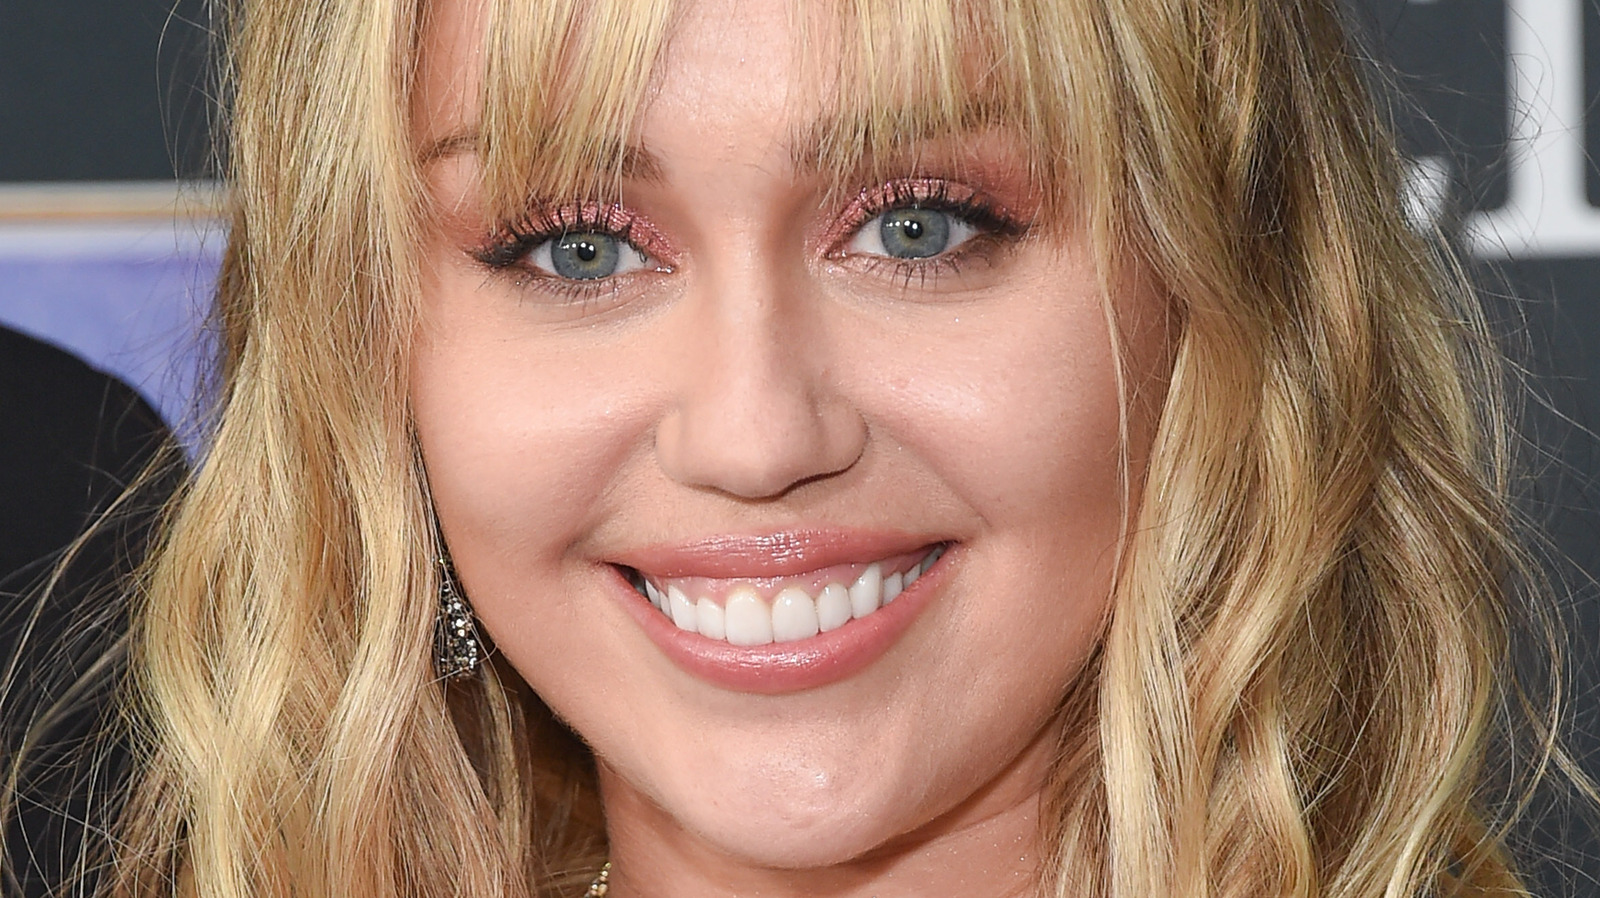 What Really Happened To Miley Cyrus' Voice?